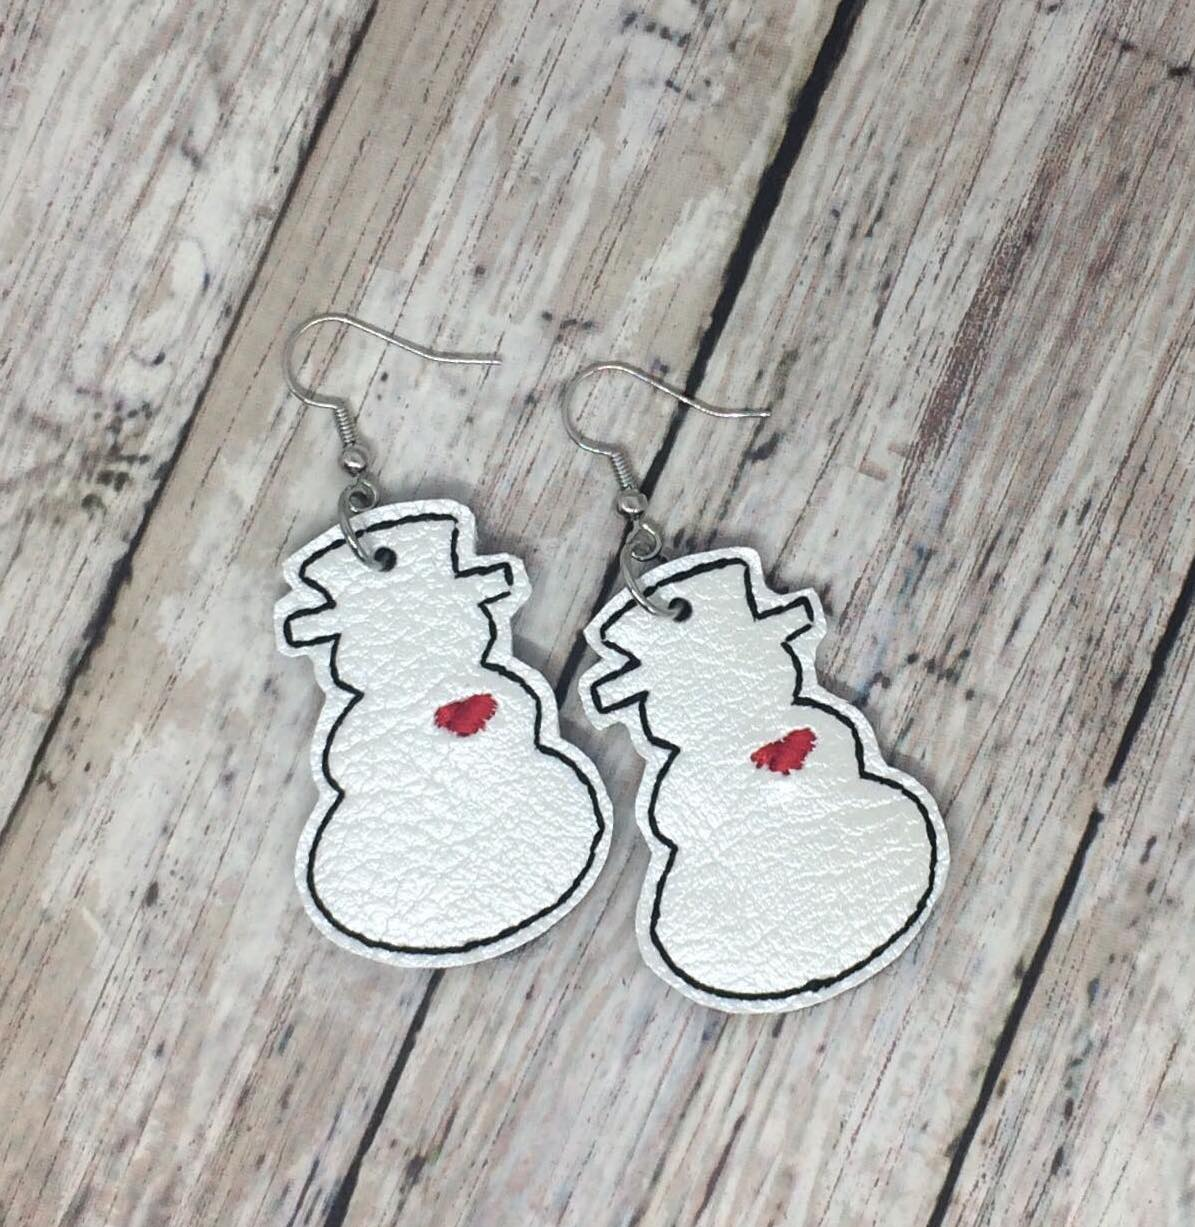 Snowman with Heart Earrings (1.5 inches in size)